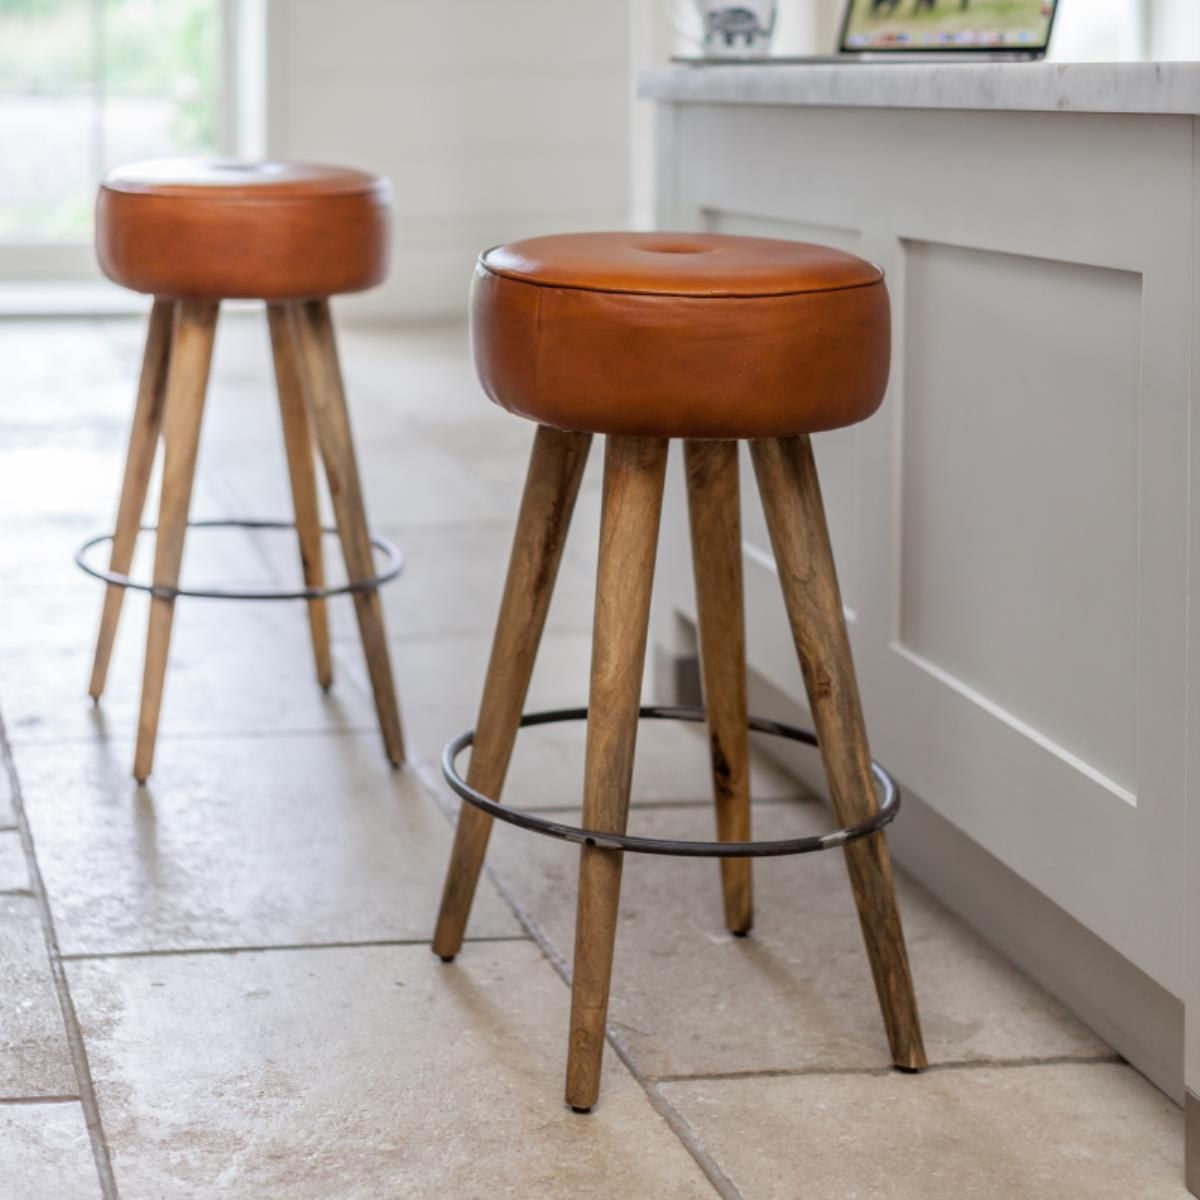 Prime Leather Round Bar Stool Stools In 2019 Bar Stools Bralicious Painted Fabric Chair Ideas Braliciousco